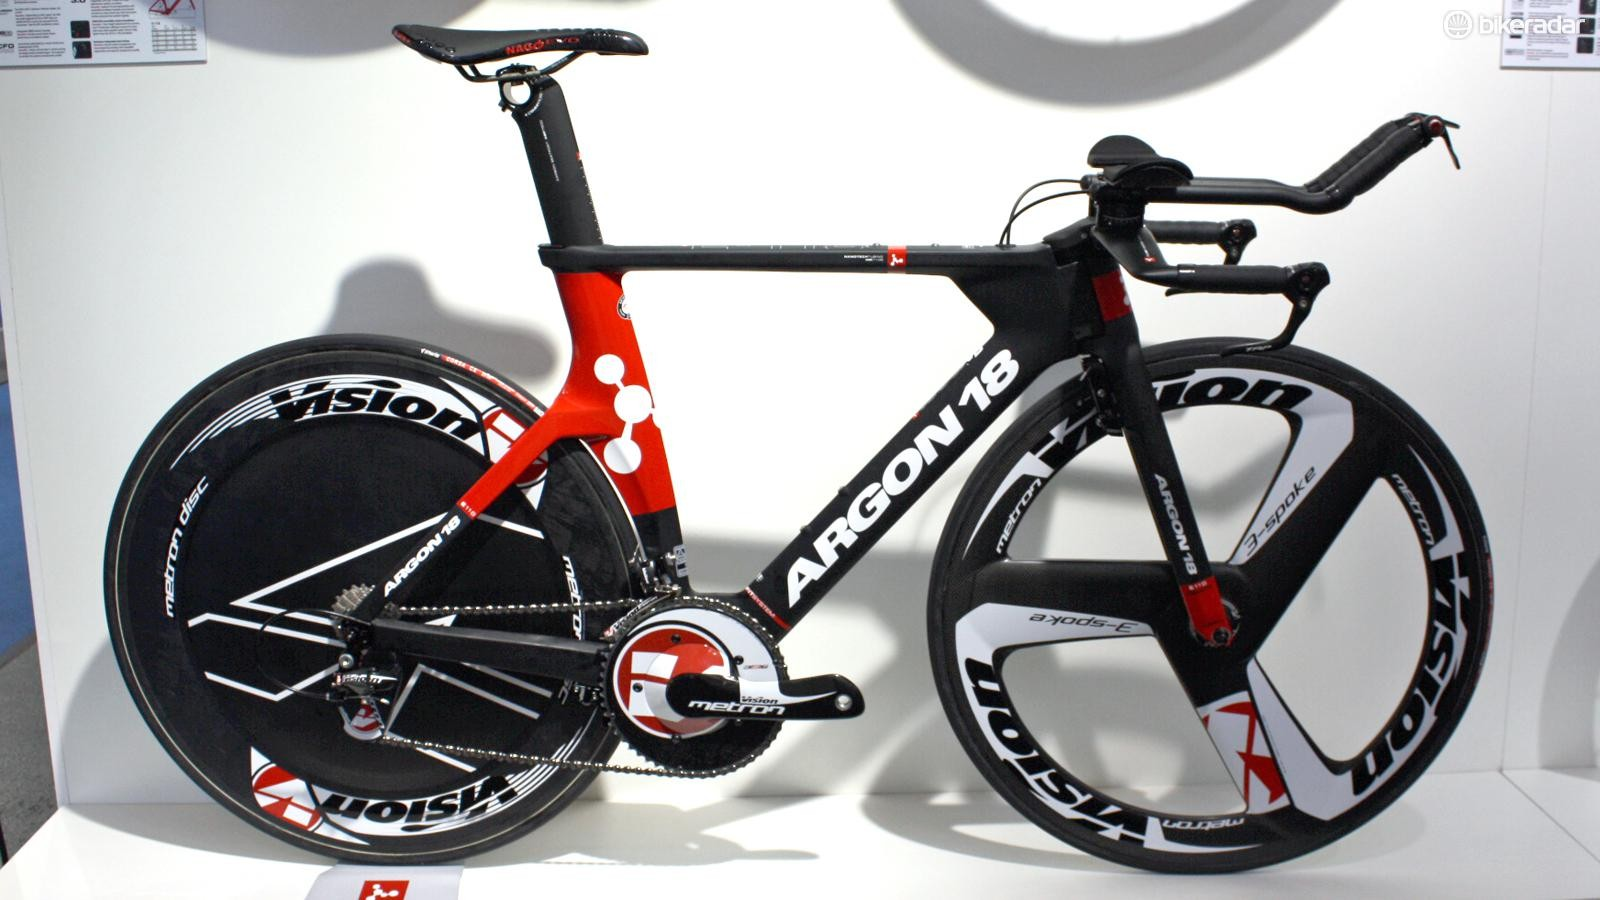 The Argon 18 E-118 Next is new for 2015 and will be the TT bike for the Bora-Argon 18 pro team